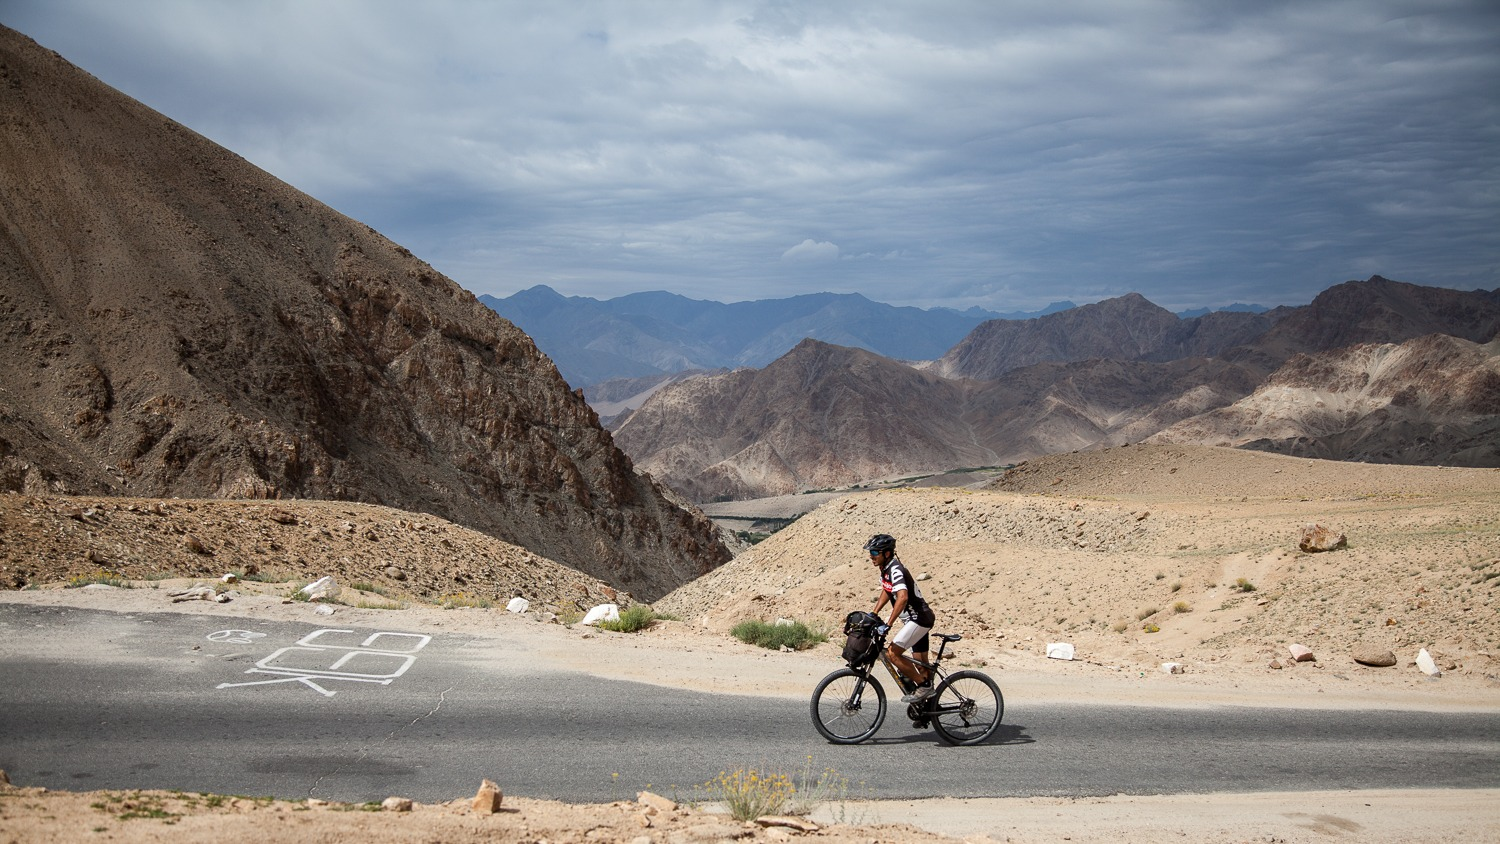 90 Days Cycling in the Himlayas: Day 48: Leh to Khardung